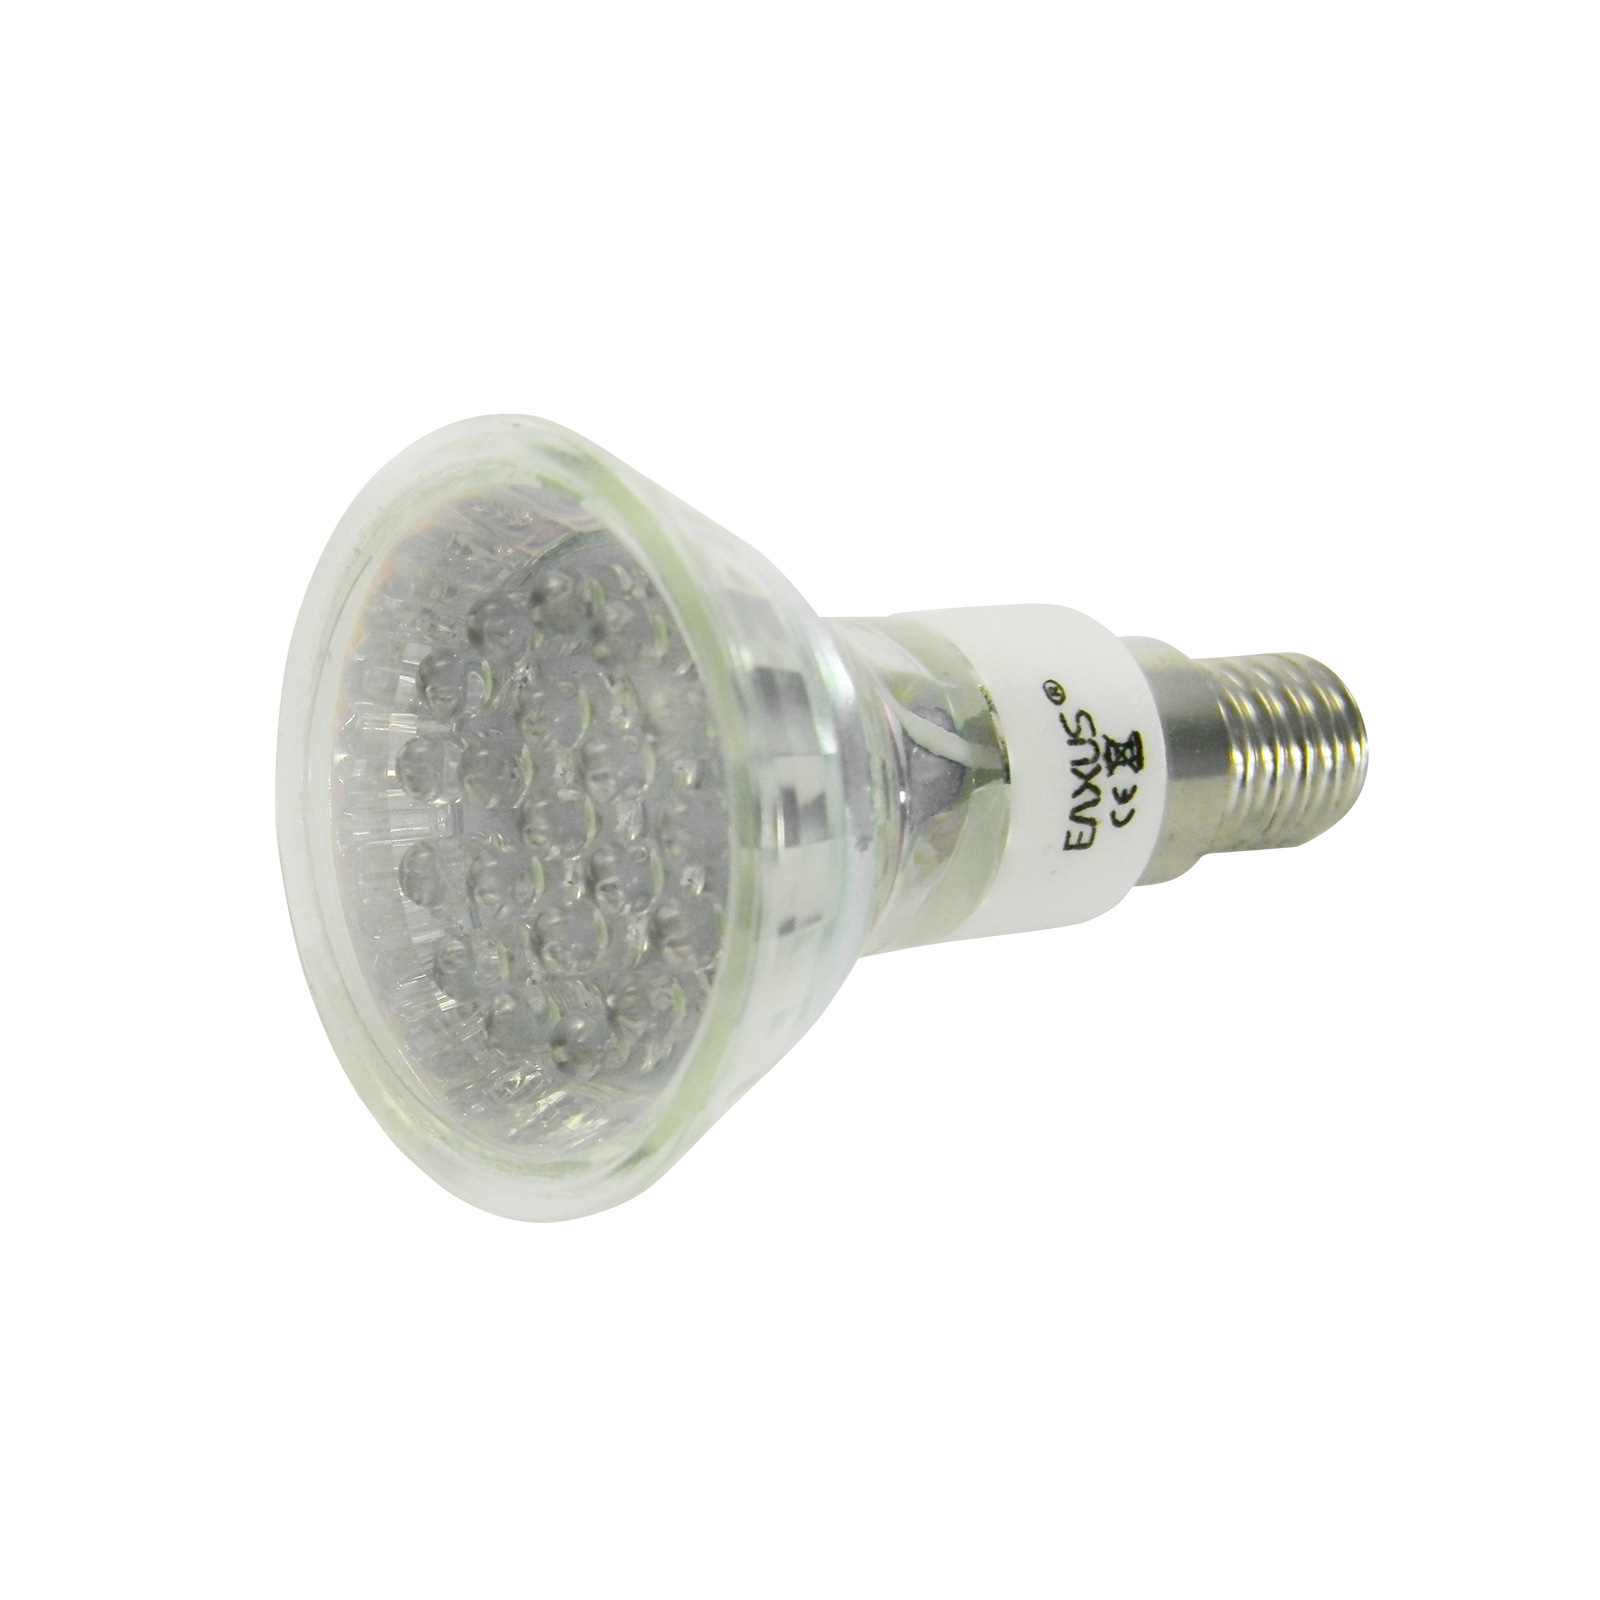 EAXUS LED SPOT Strahler E14 warmweiss, 20 LEDs | E14_20